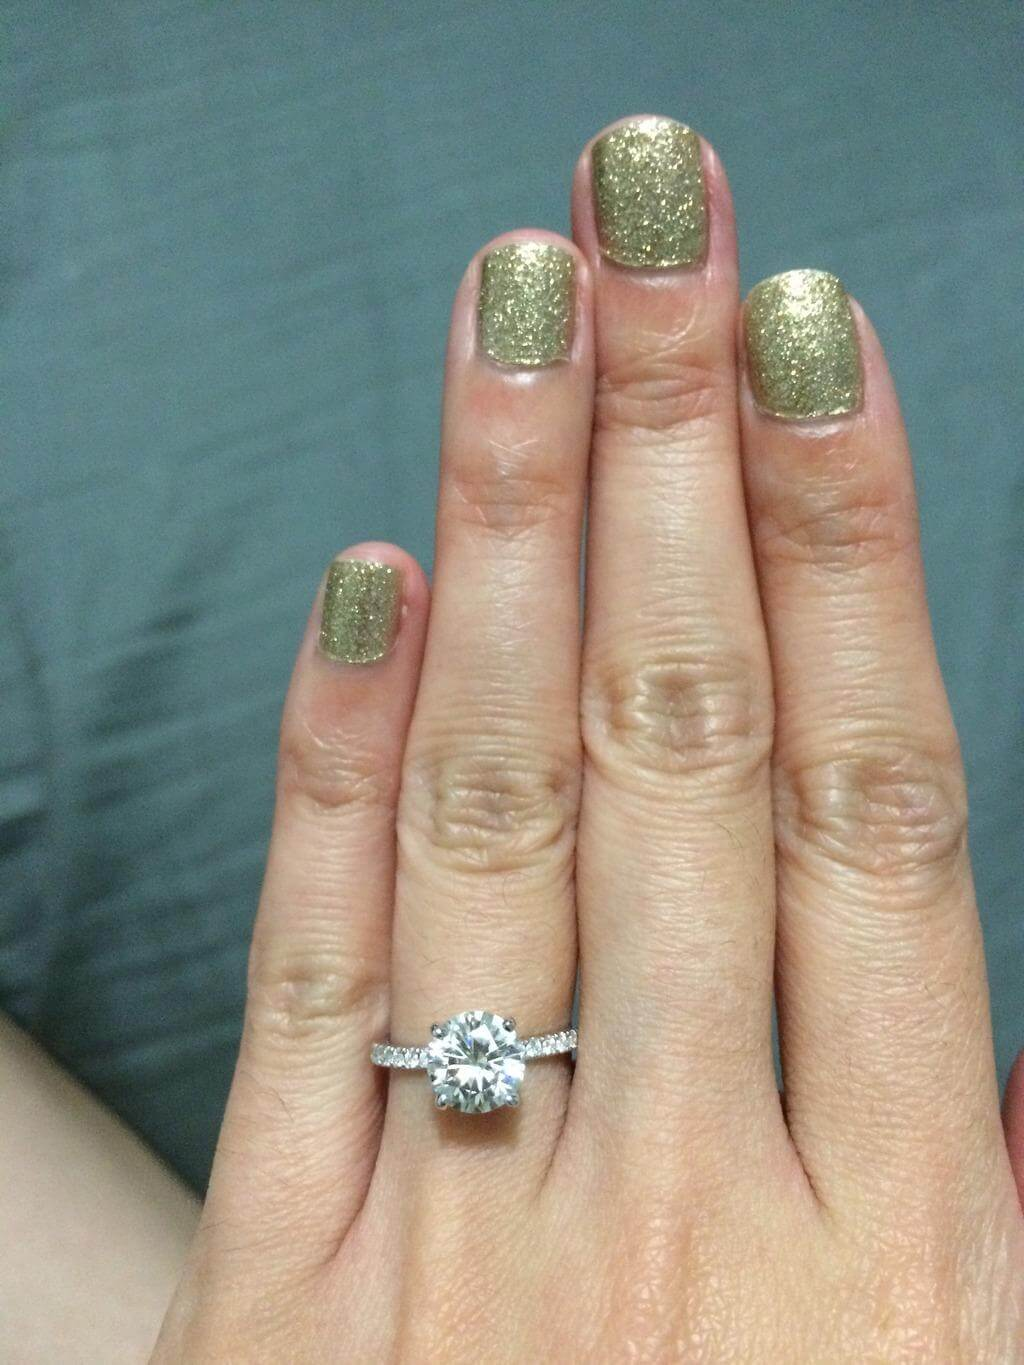 1 carat round diamond on a small hand with size 2.5 ring finger